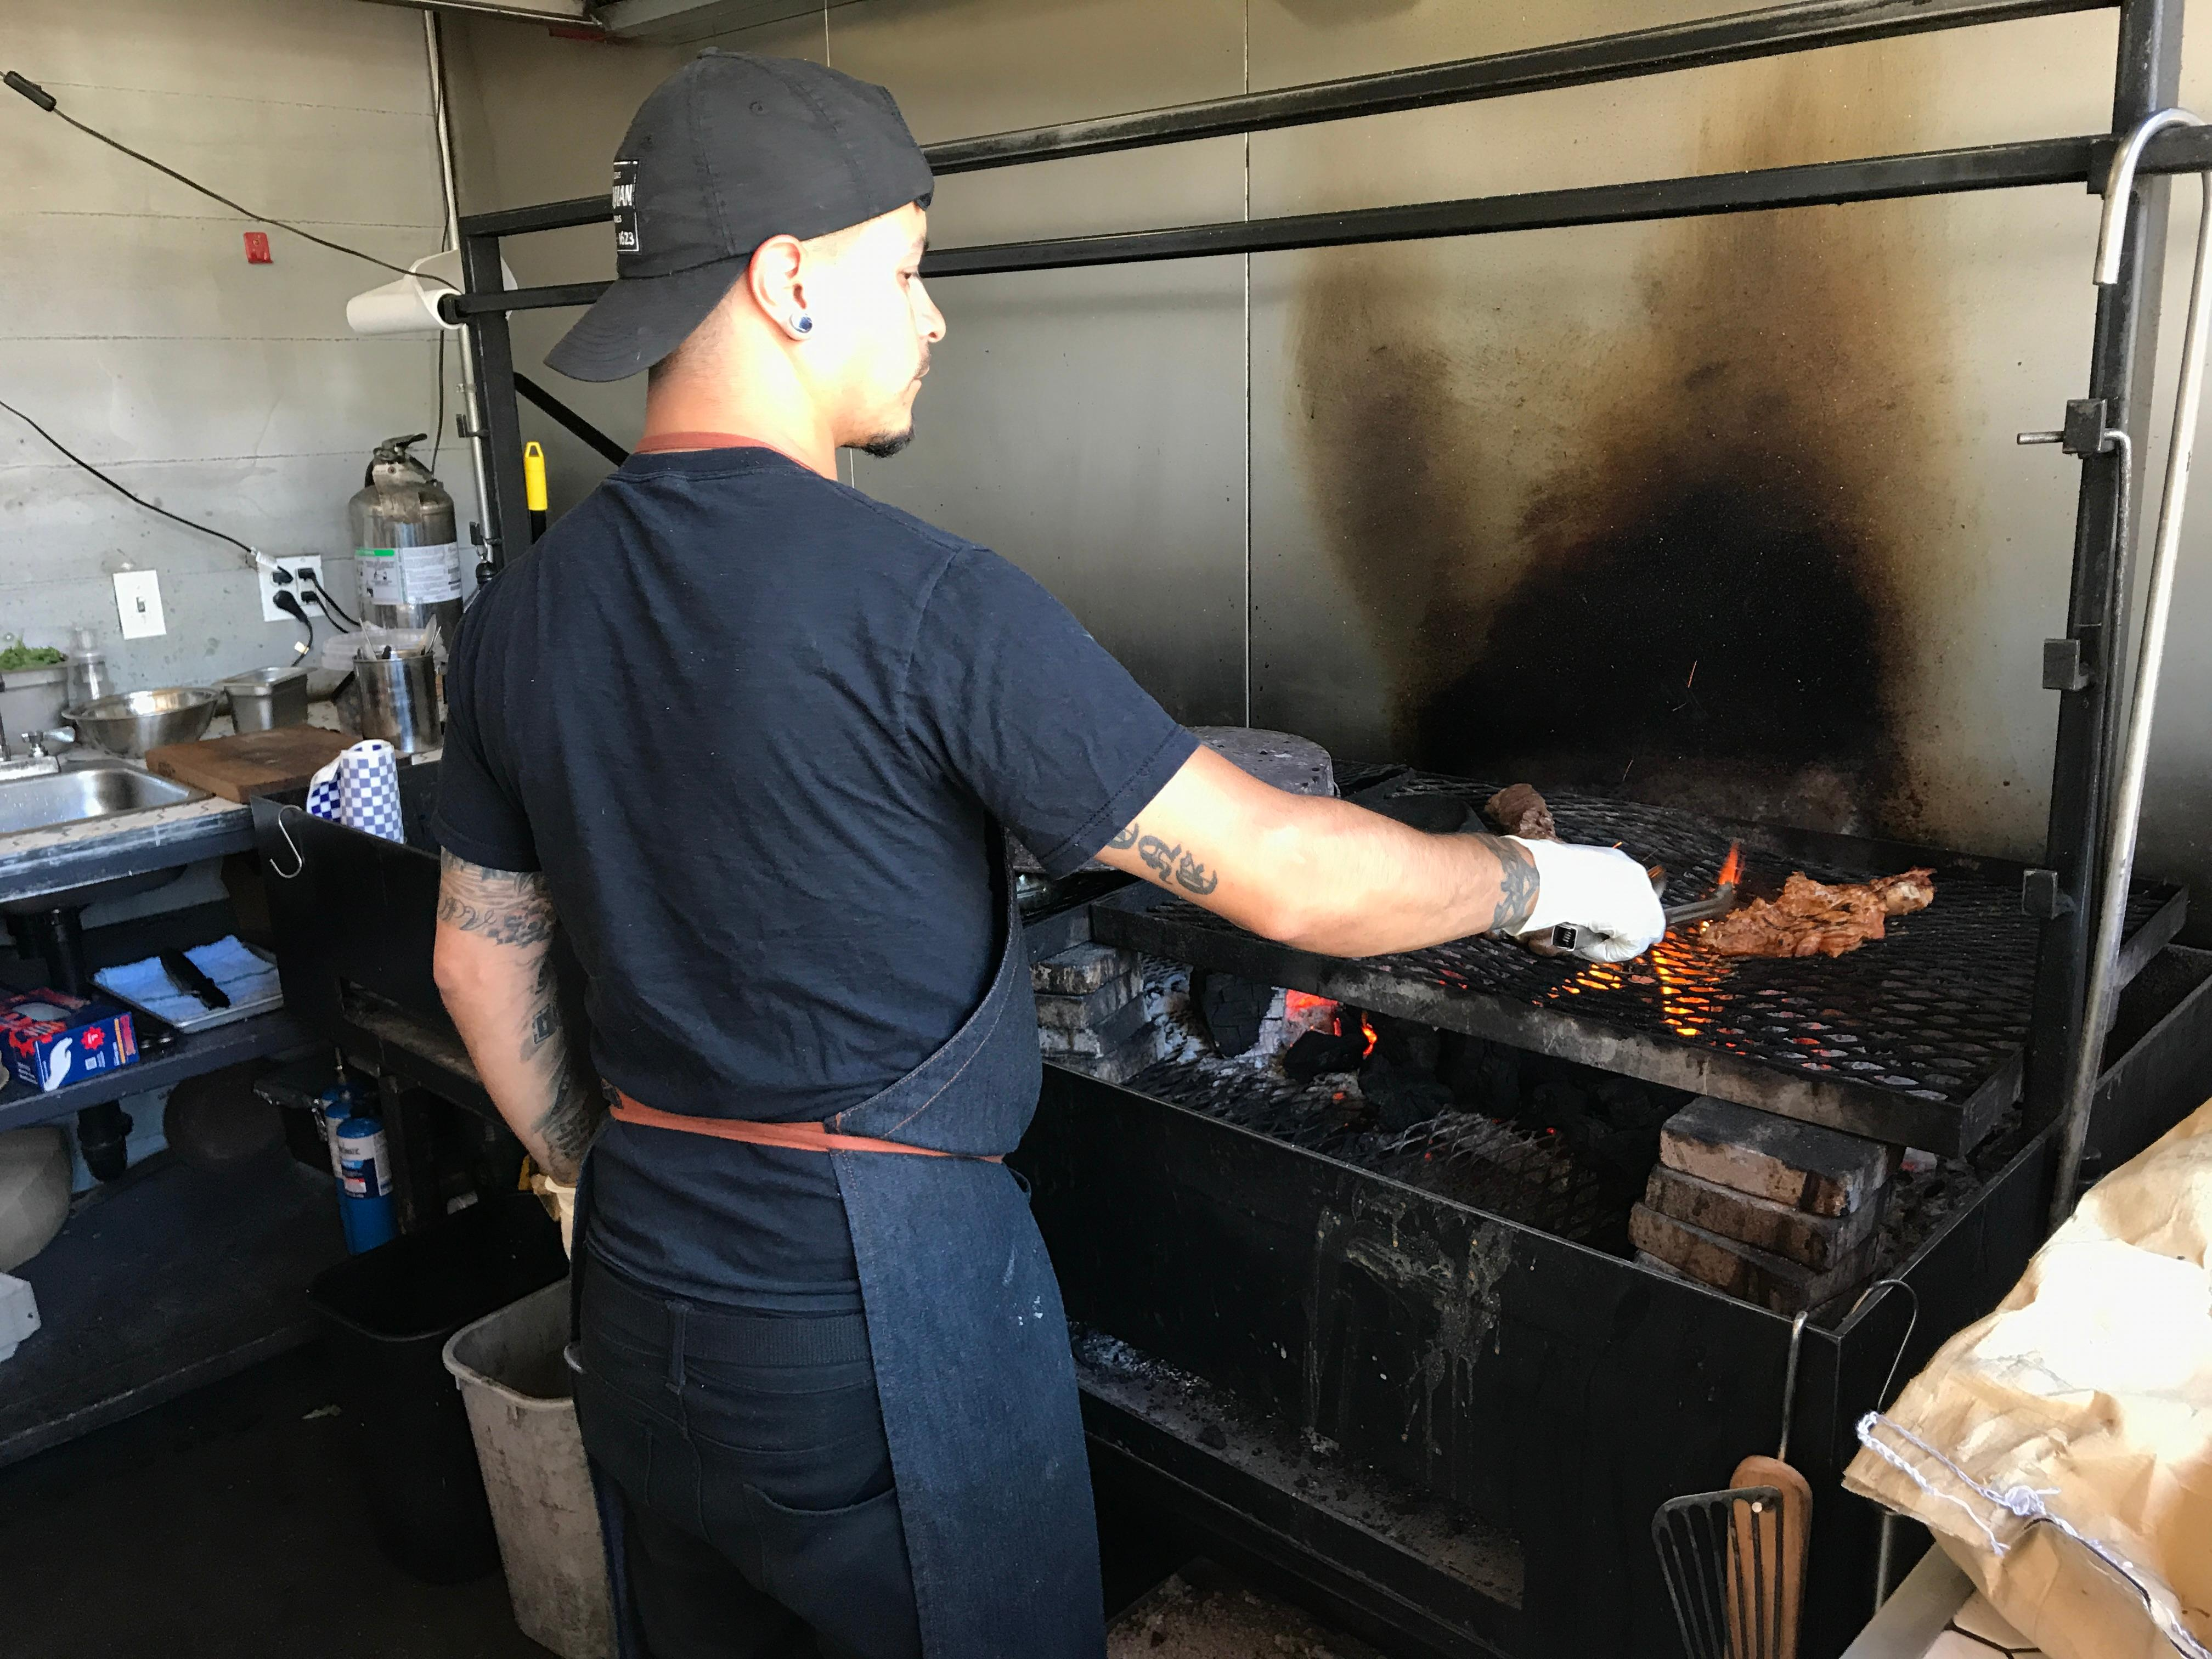 Manning the Ciudad grill. (Image: Frank Guanco)